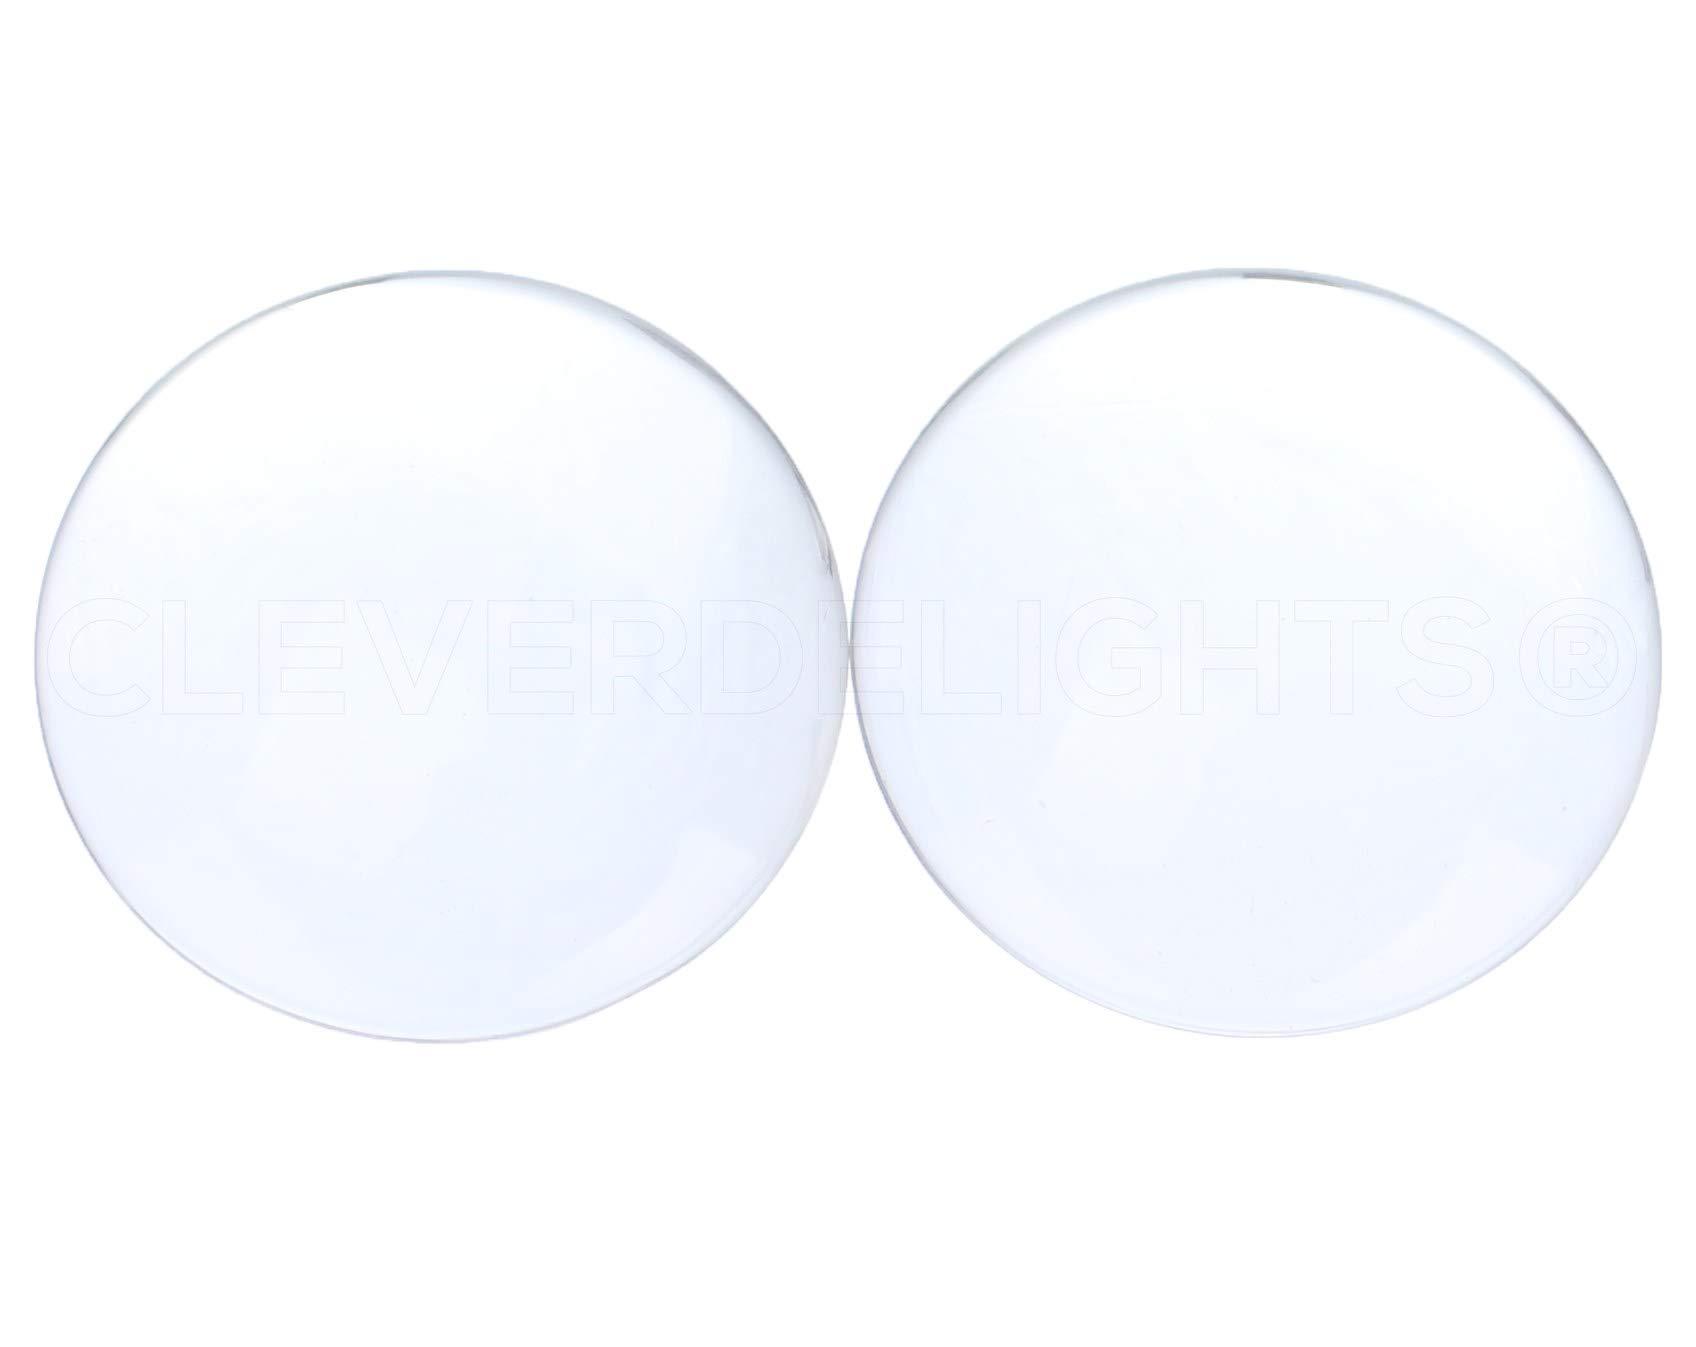 10 Pack - CleverDelights 3'' Round Glass Cabochons - 5/8'' Thick - Clear Magnifying Glass Cabs Domes by CleverDelights